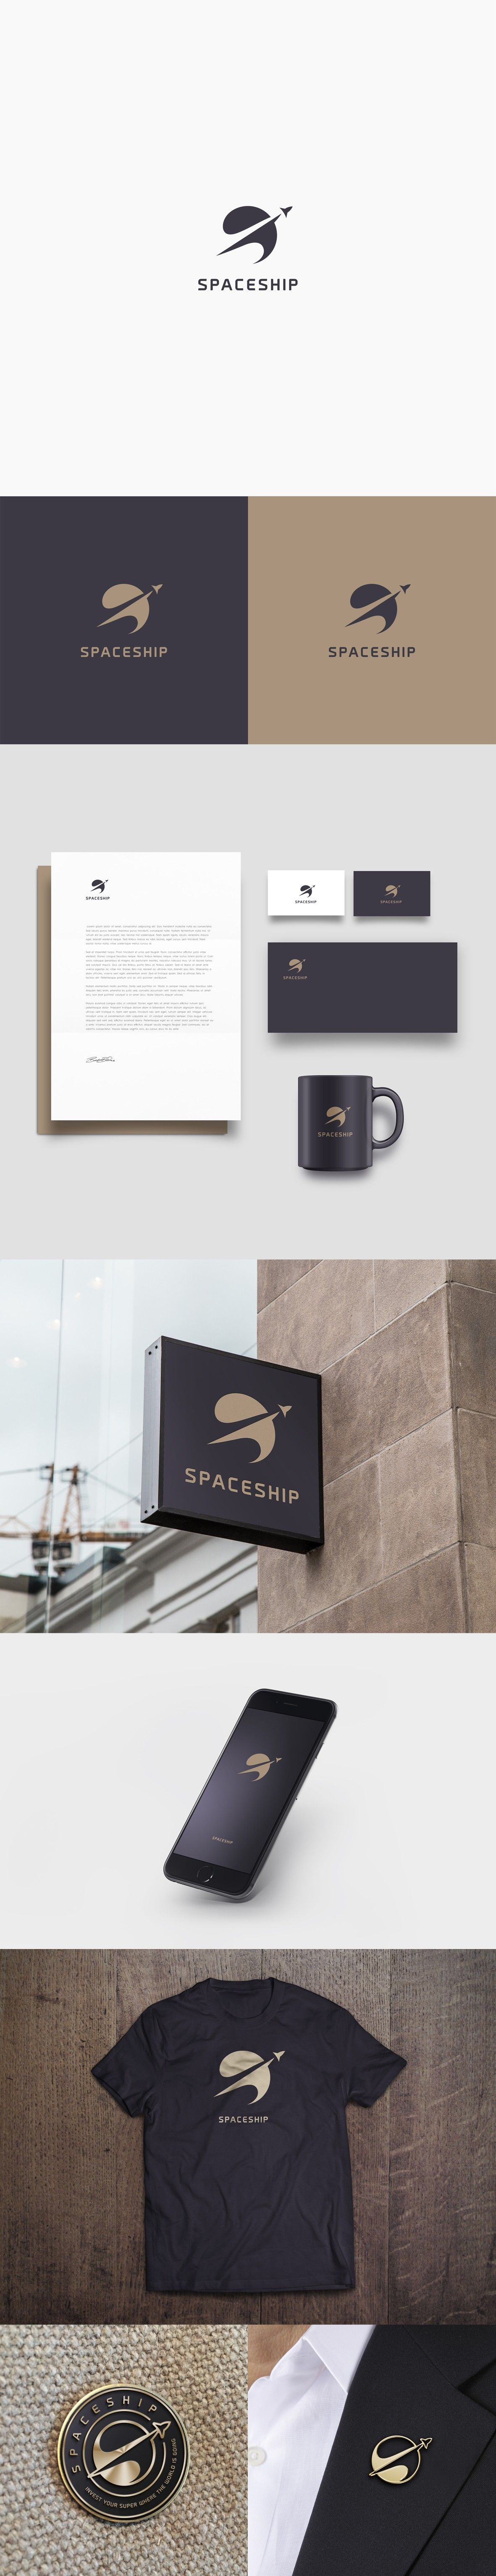 Check out this Logo design from the 99designs community.